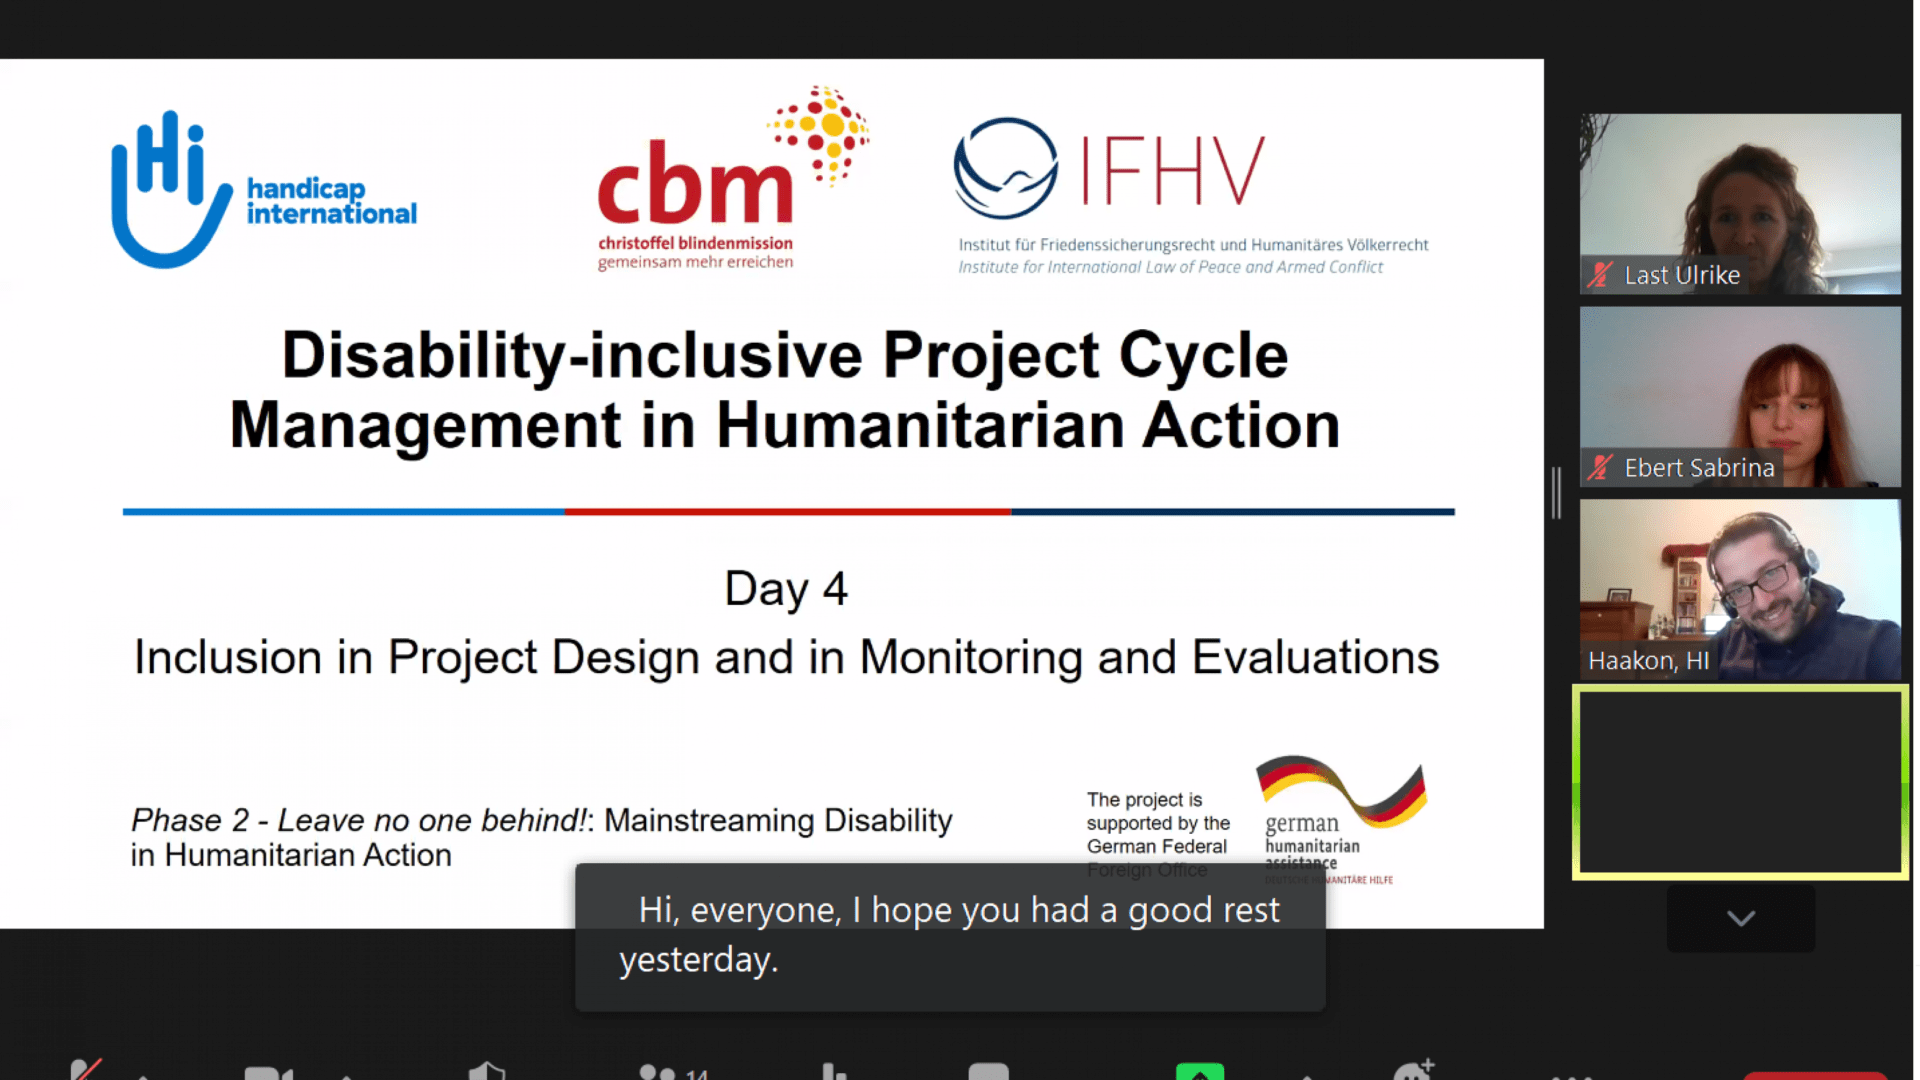 """This picture shows a Powerpointslide with the title """"Disability-inclusive Project Cycle Management in Humanitarian Action"""" and the hosts Ulrike Last, Sabrina Ebert and Haakon Spriewald."""